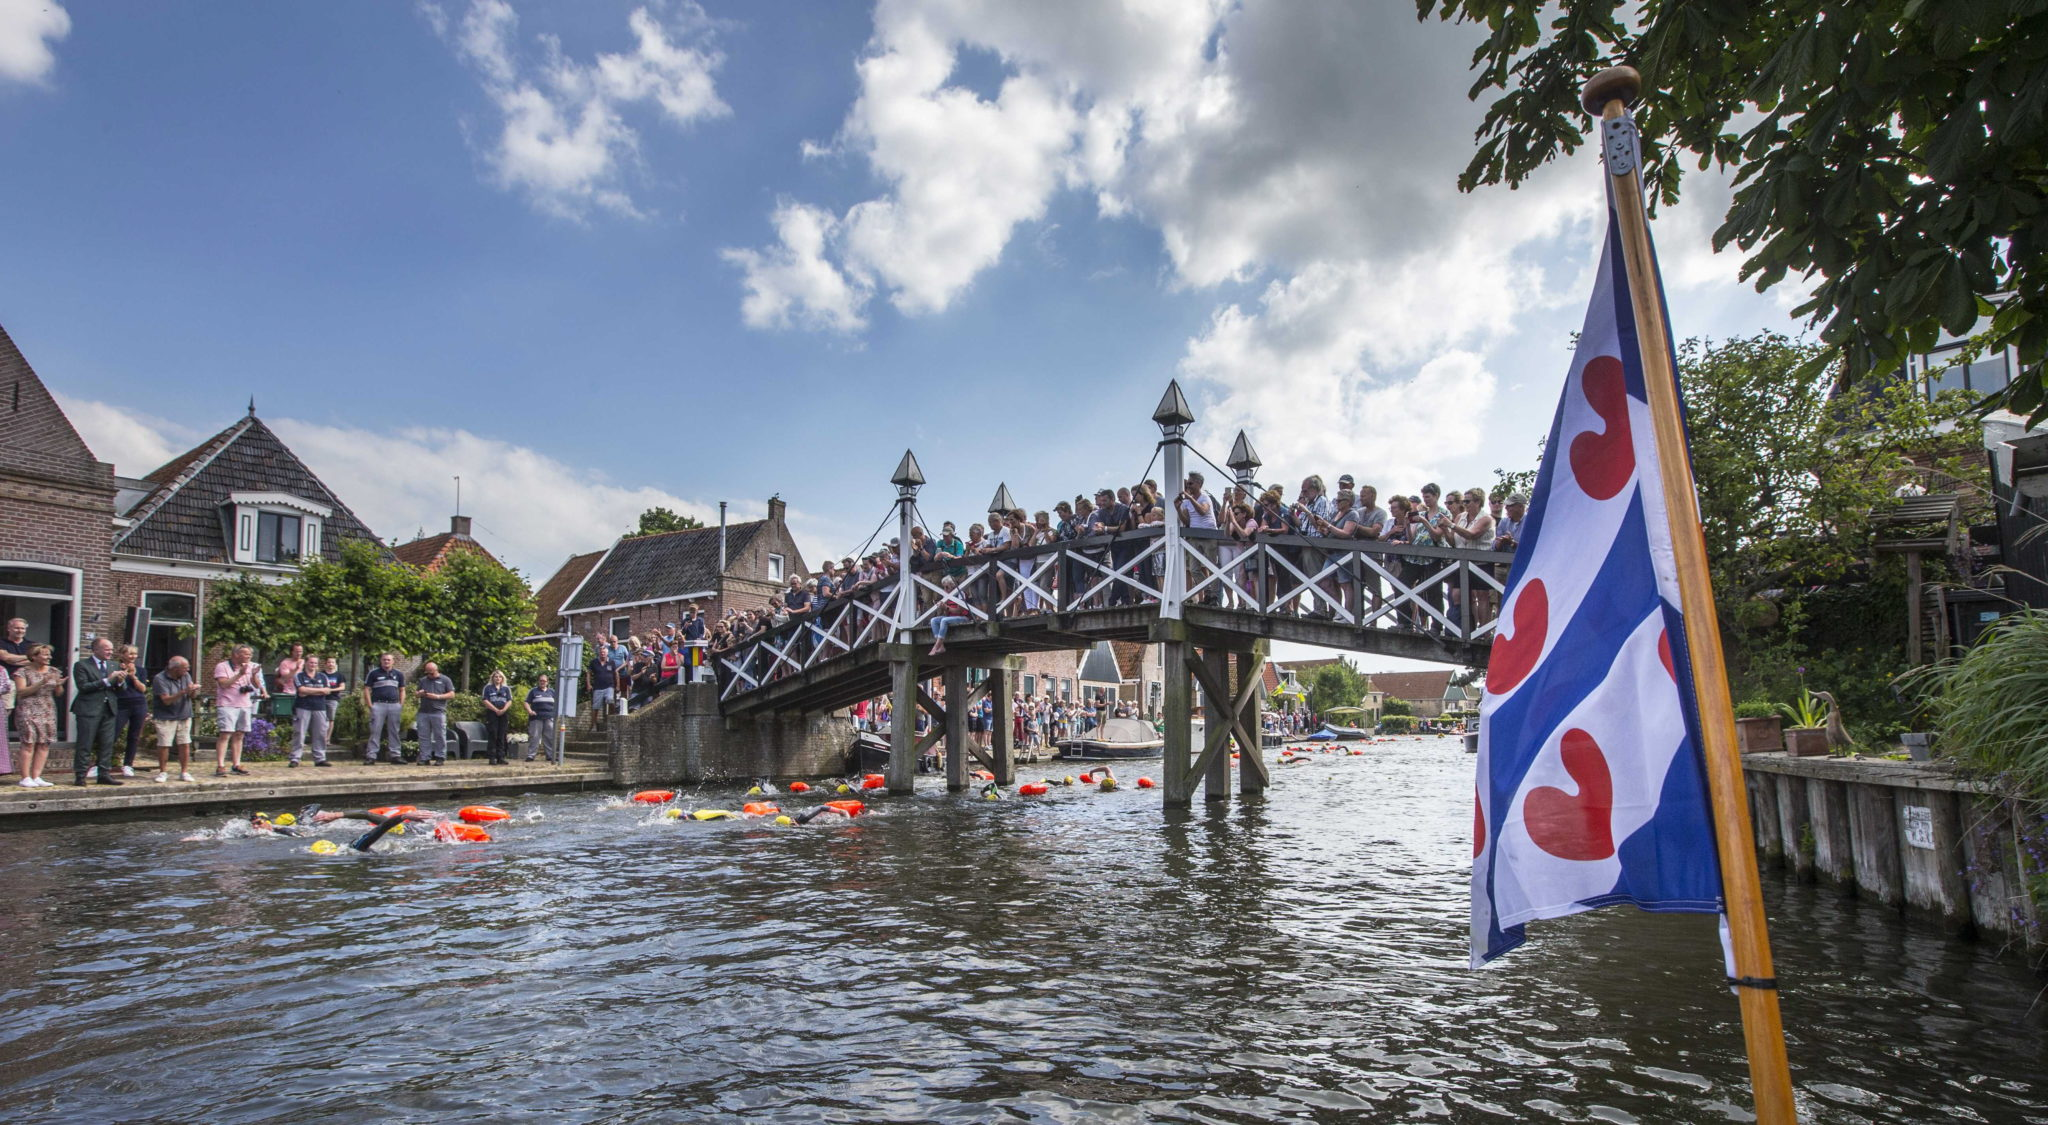 epa07667043 Dutch Former World Champion Maarten van der Weijden is passing Hindeloopen during his second attempt to swim along the Elfstedentocht, a journey of over 200 kilometers in Leeuwarden, The Netherlands, 22 June 2019. In August 2018 the swimmer raised more than five million euros for cancer research, even though he did not finish the journey.  EPA/VINCENT JANNINK  Dostawca: PAP/EPA.